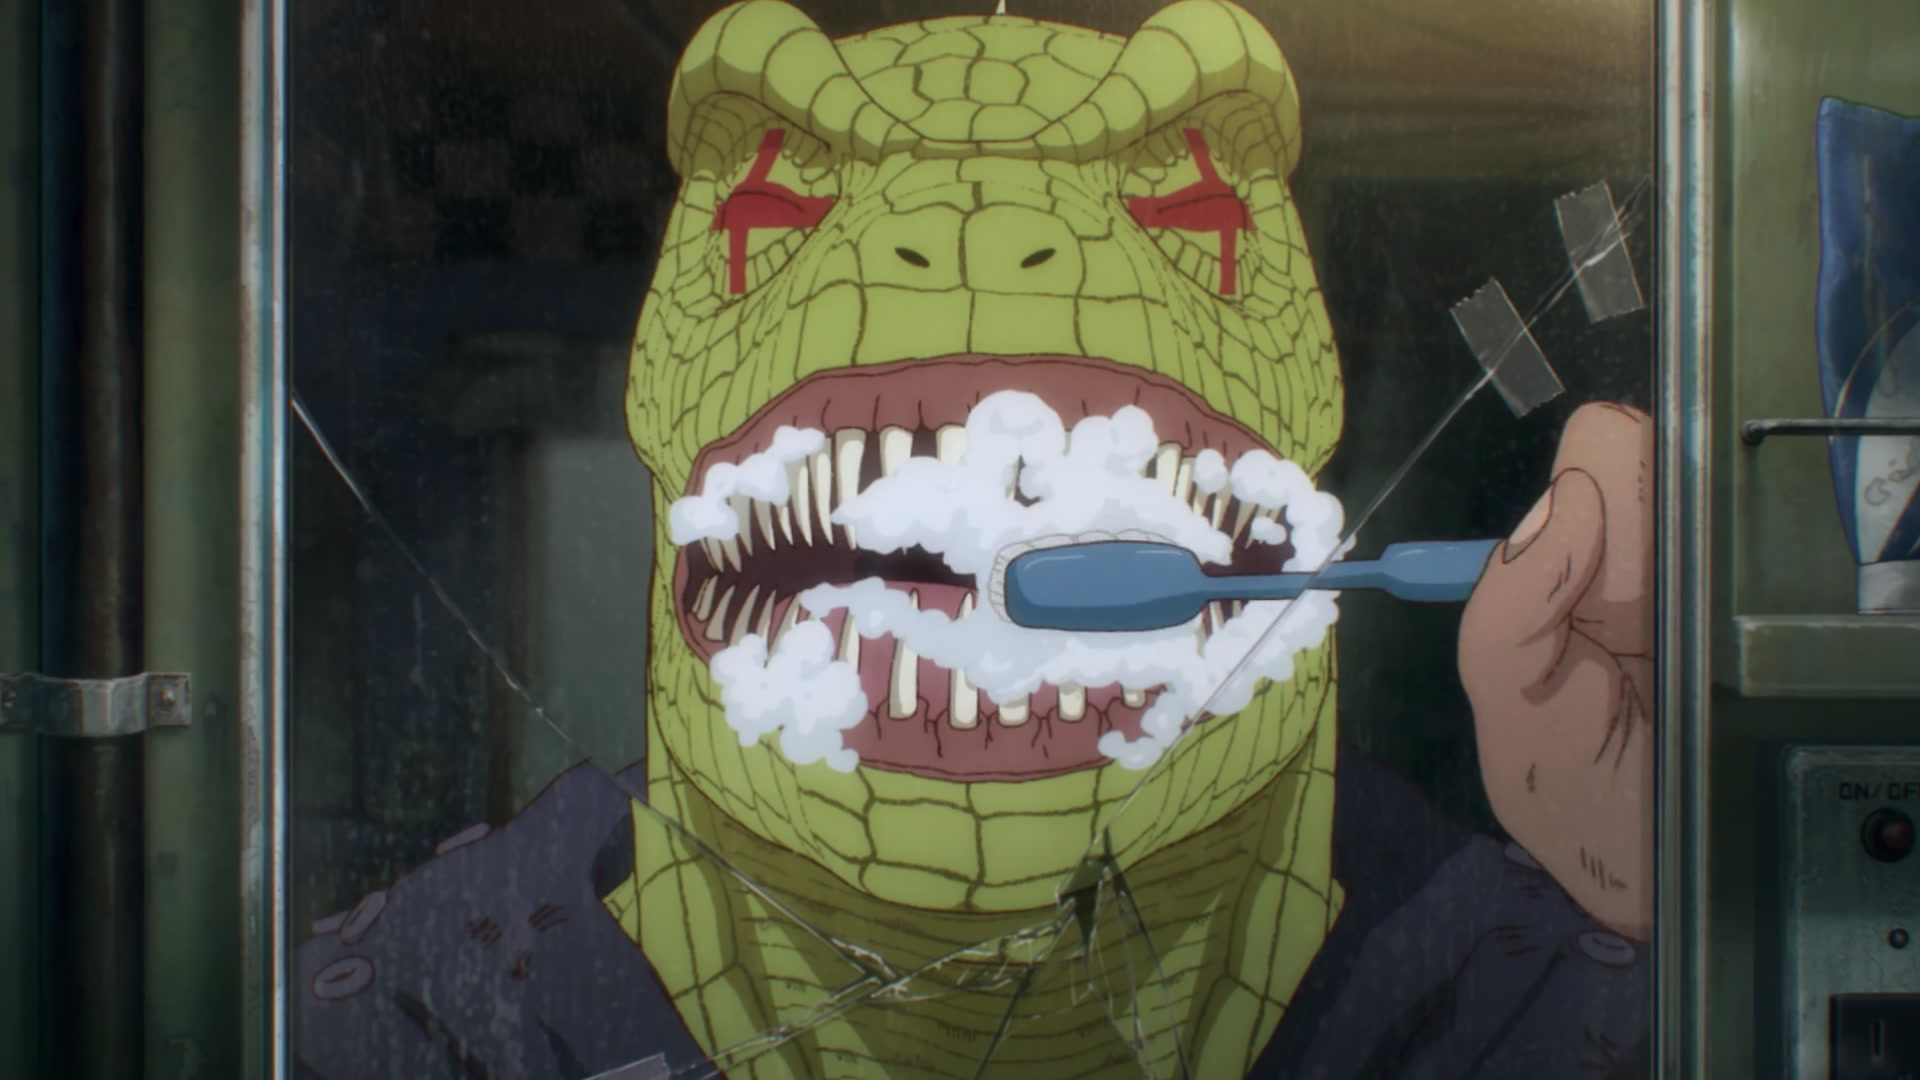 Caiman brushing his teeth